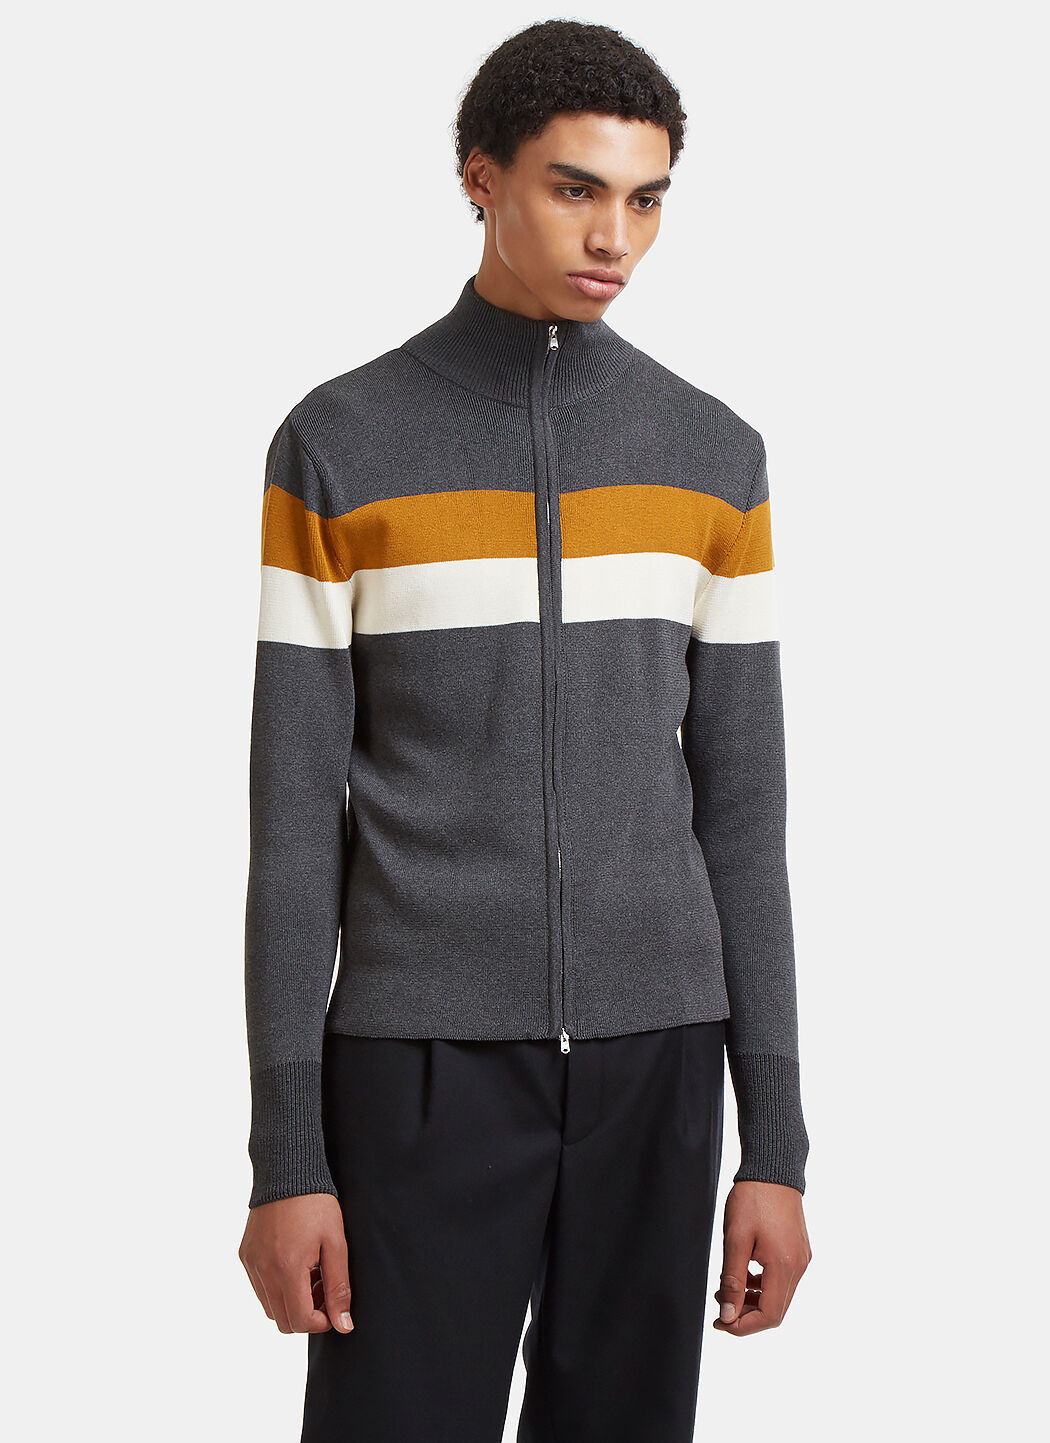 WALES BONNER EMORY CONTRAST STRIPED ZIP-UP SWEATER IN GREY